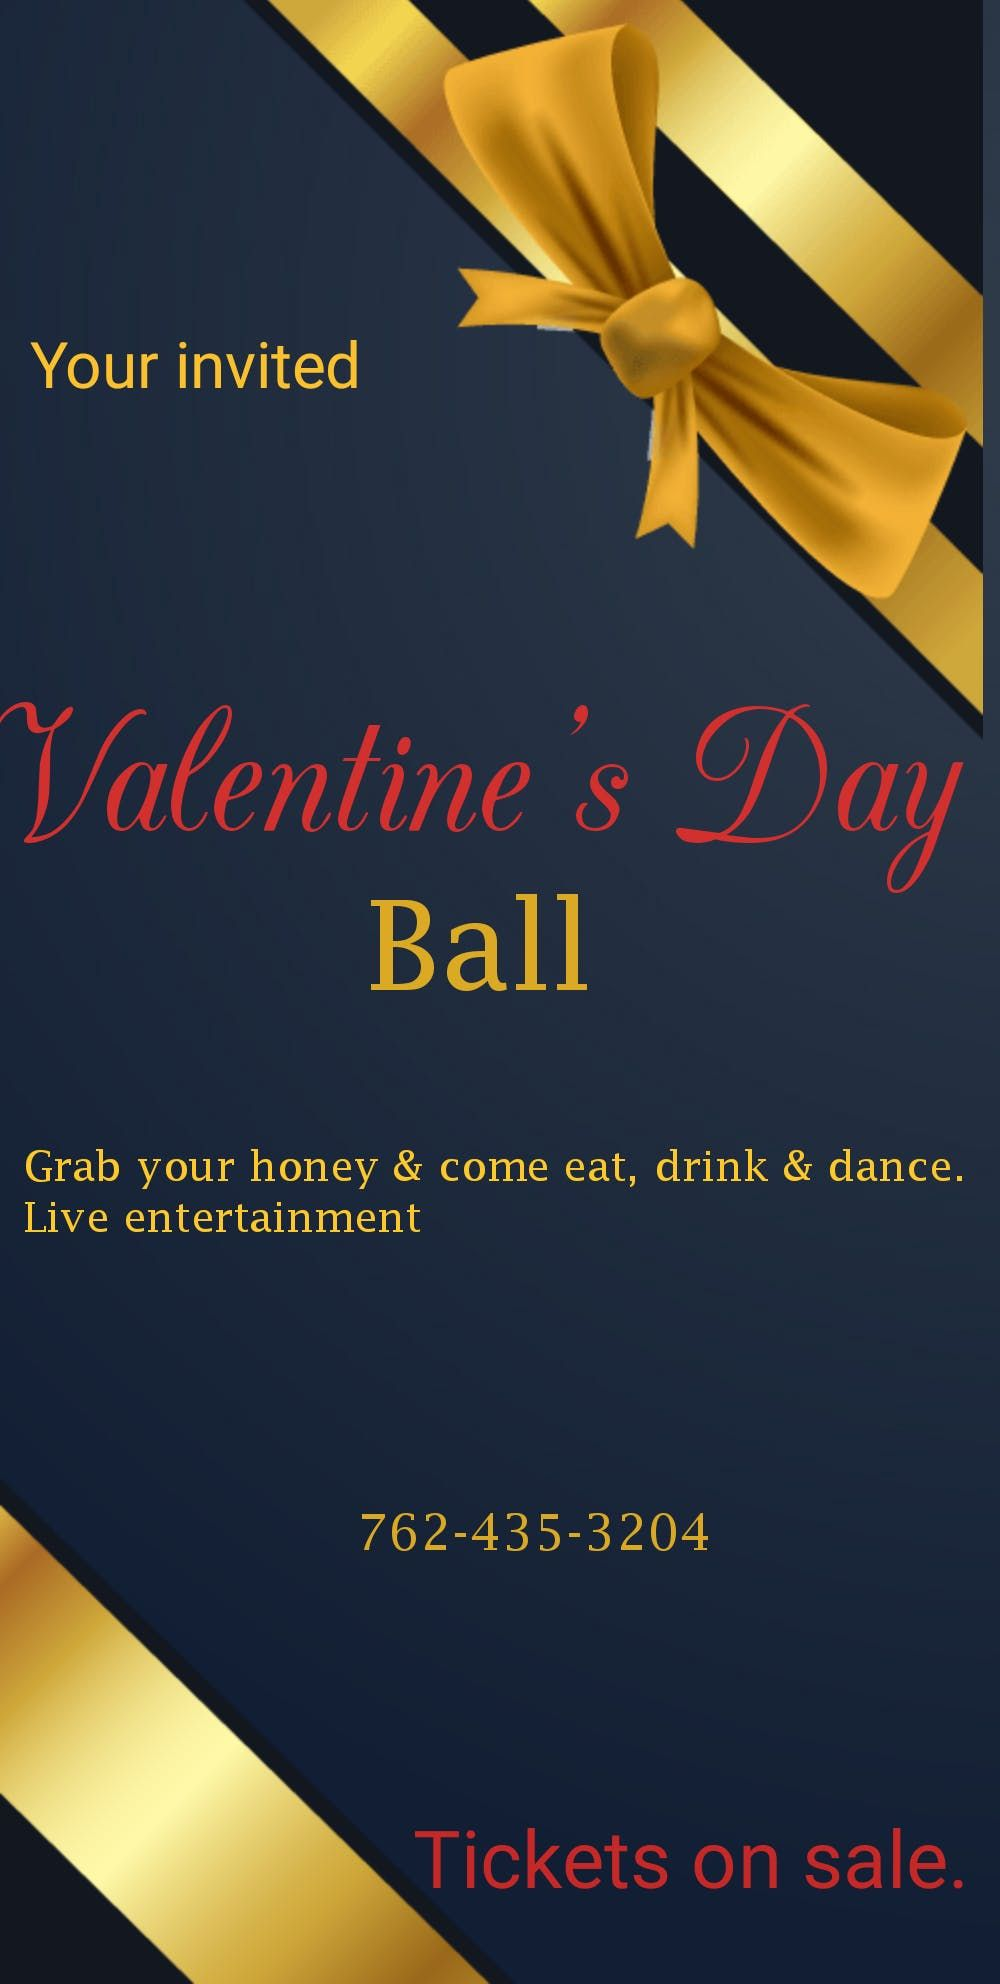 A Royal Valentines Day Ball